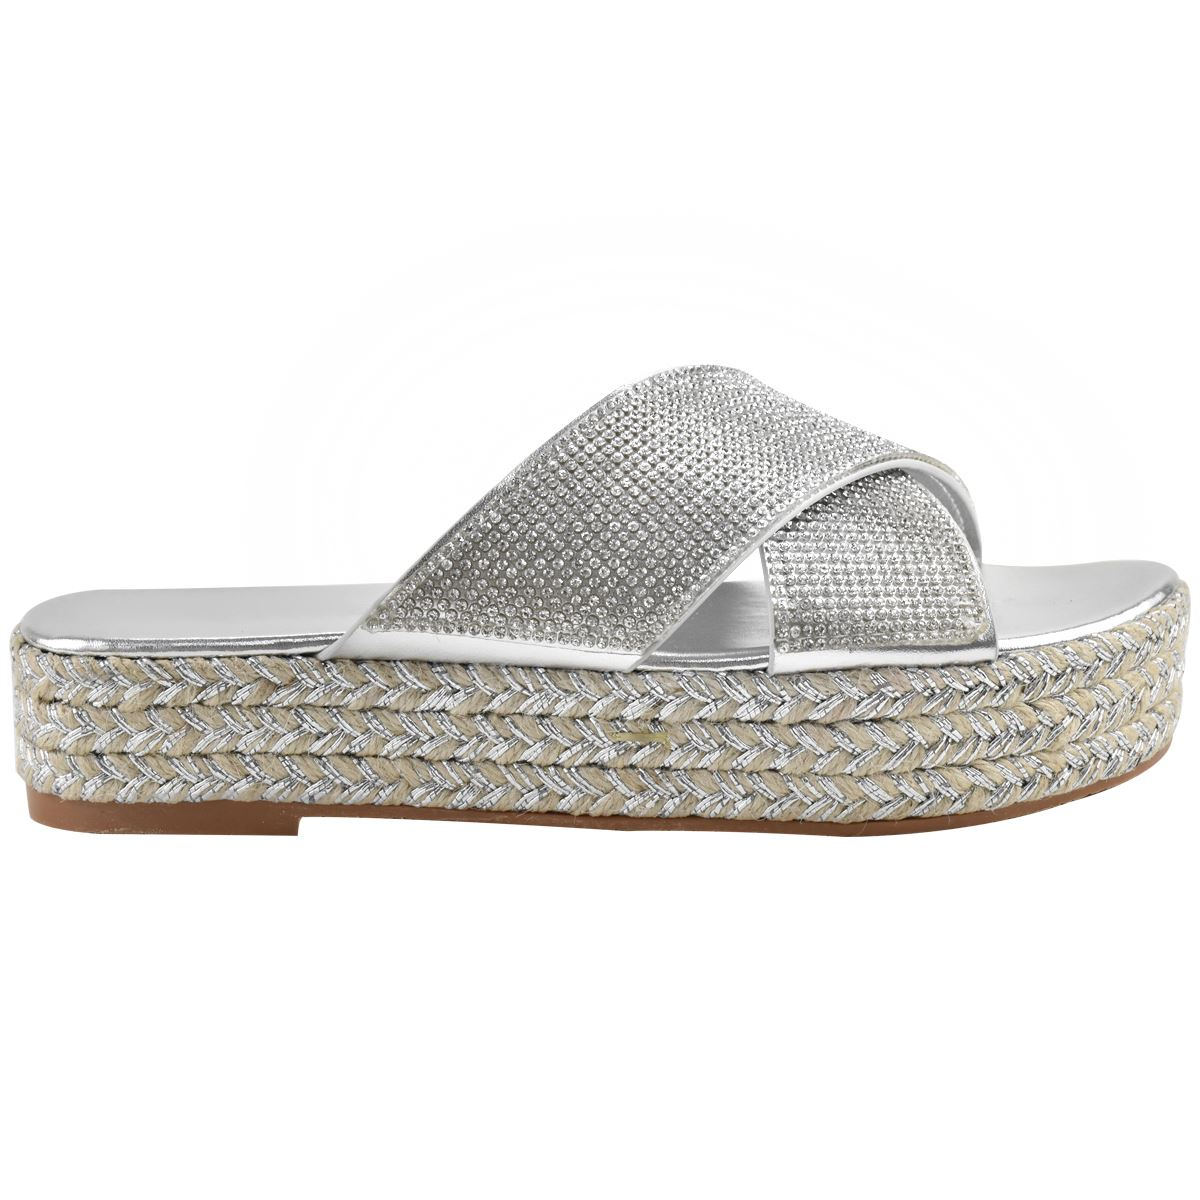 Womens-Diamante-Slip-On-Sandals-Flatforms-Sparkly-Platform-Summer-Size-UK thumbnail 14